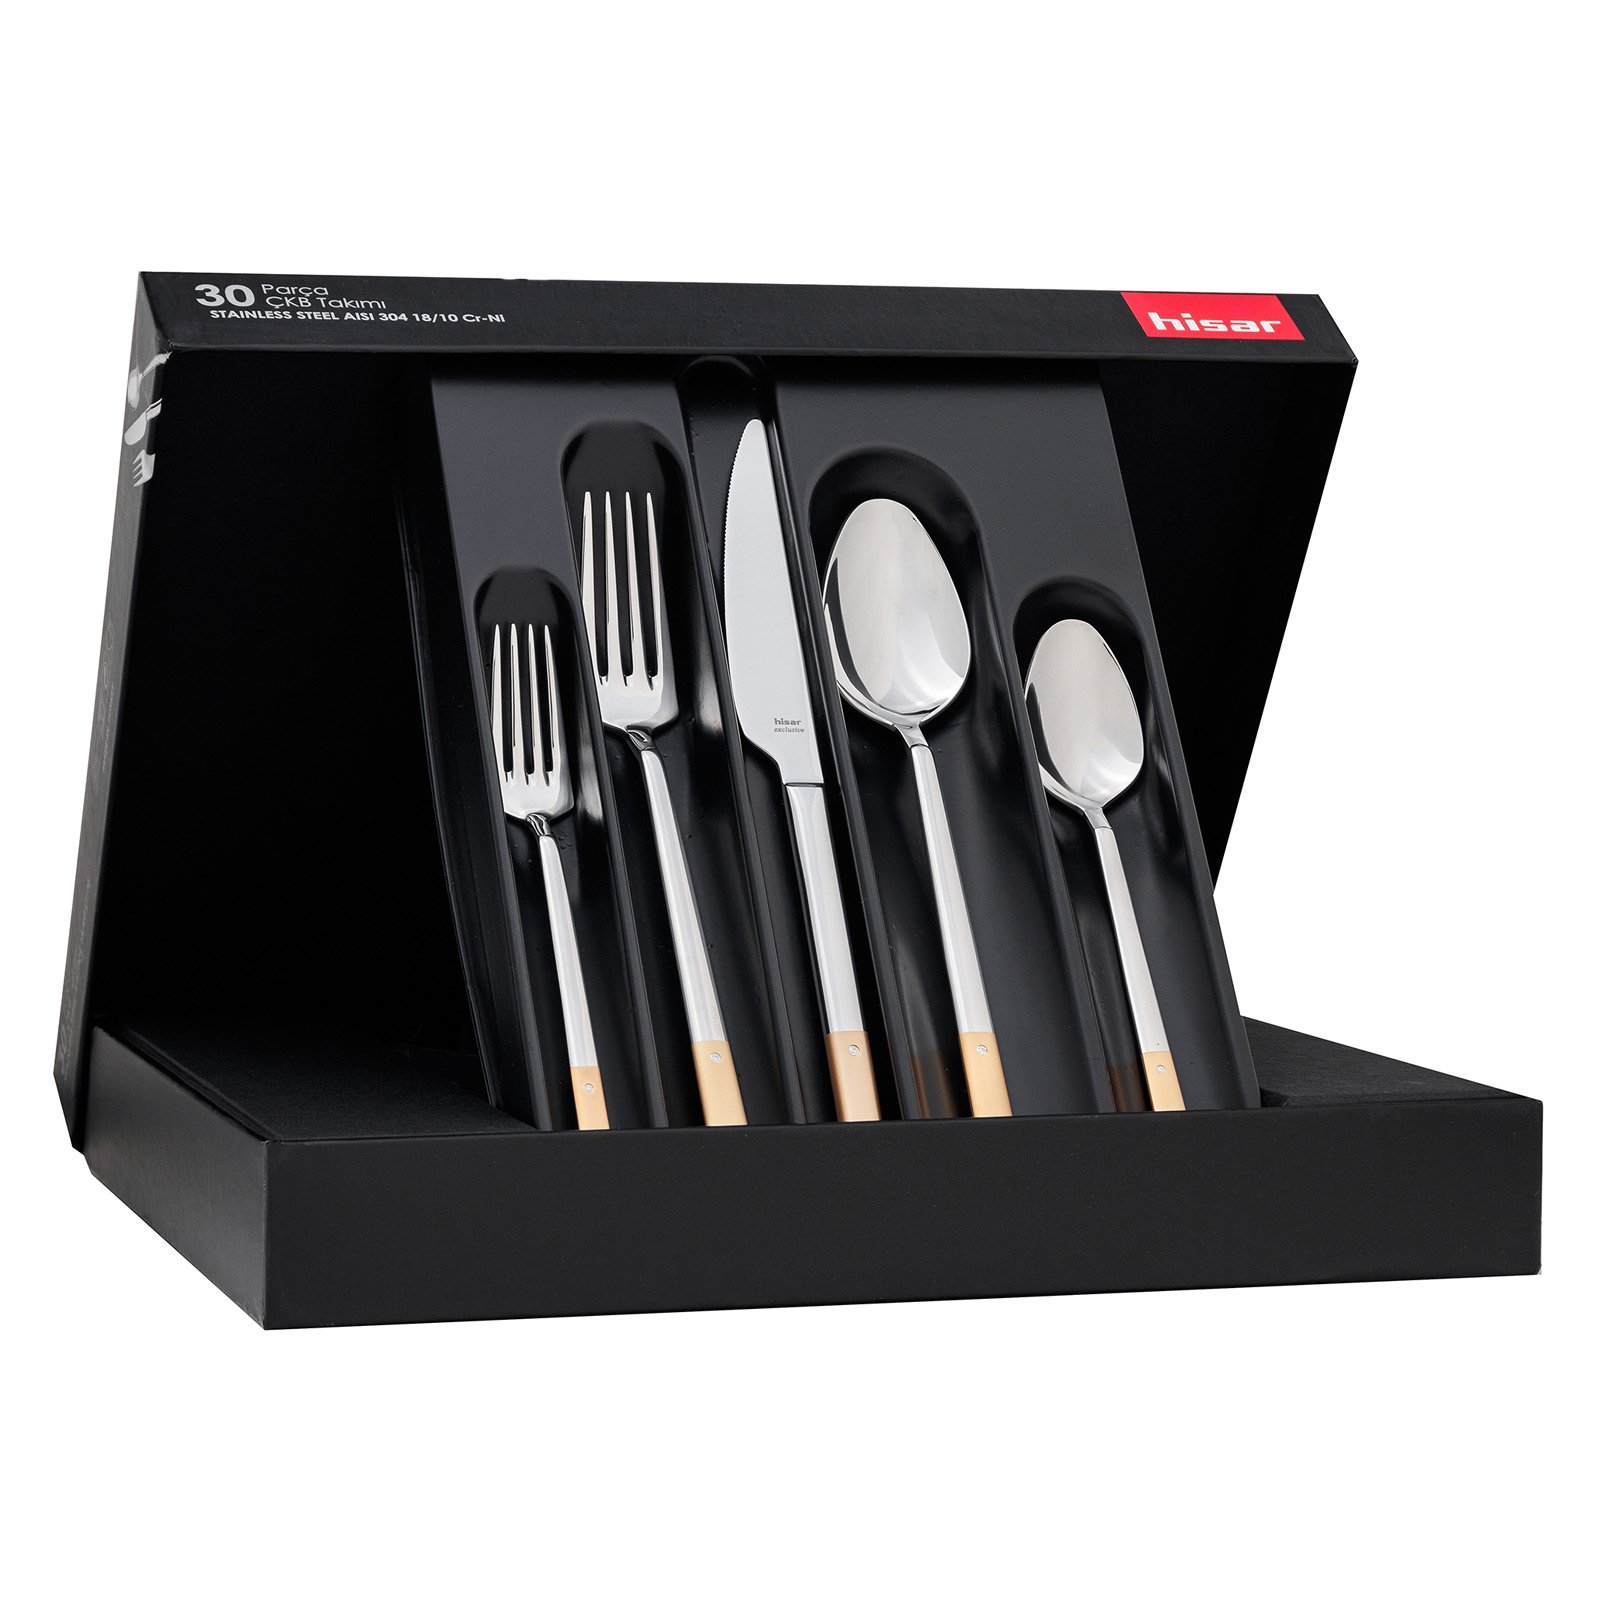 Hisar Milan 30 Piece Flatware Set